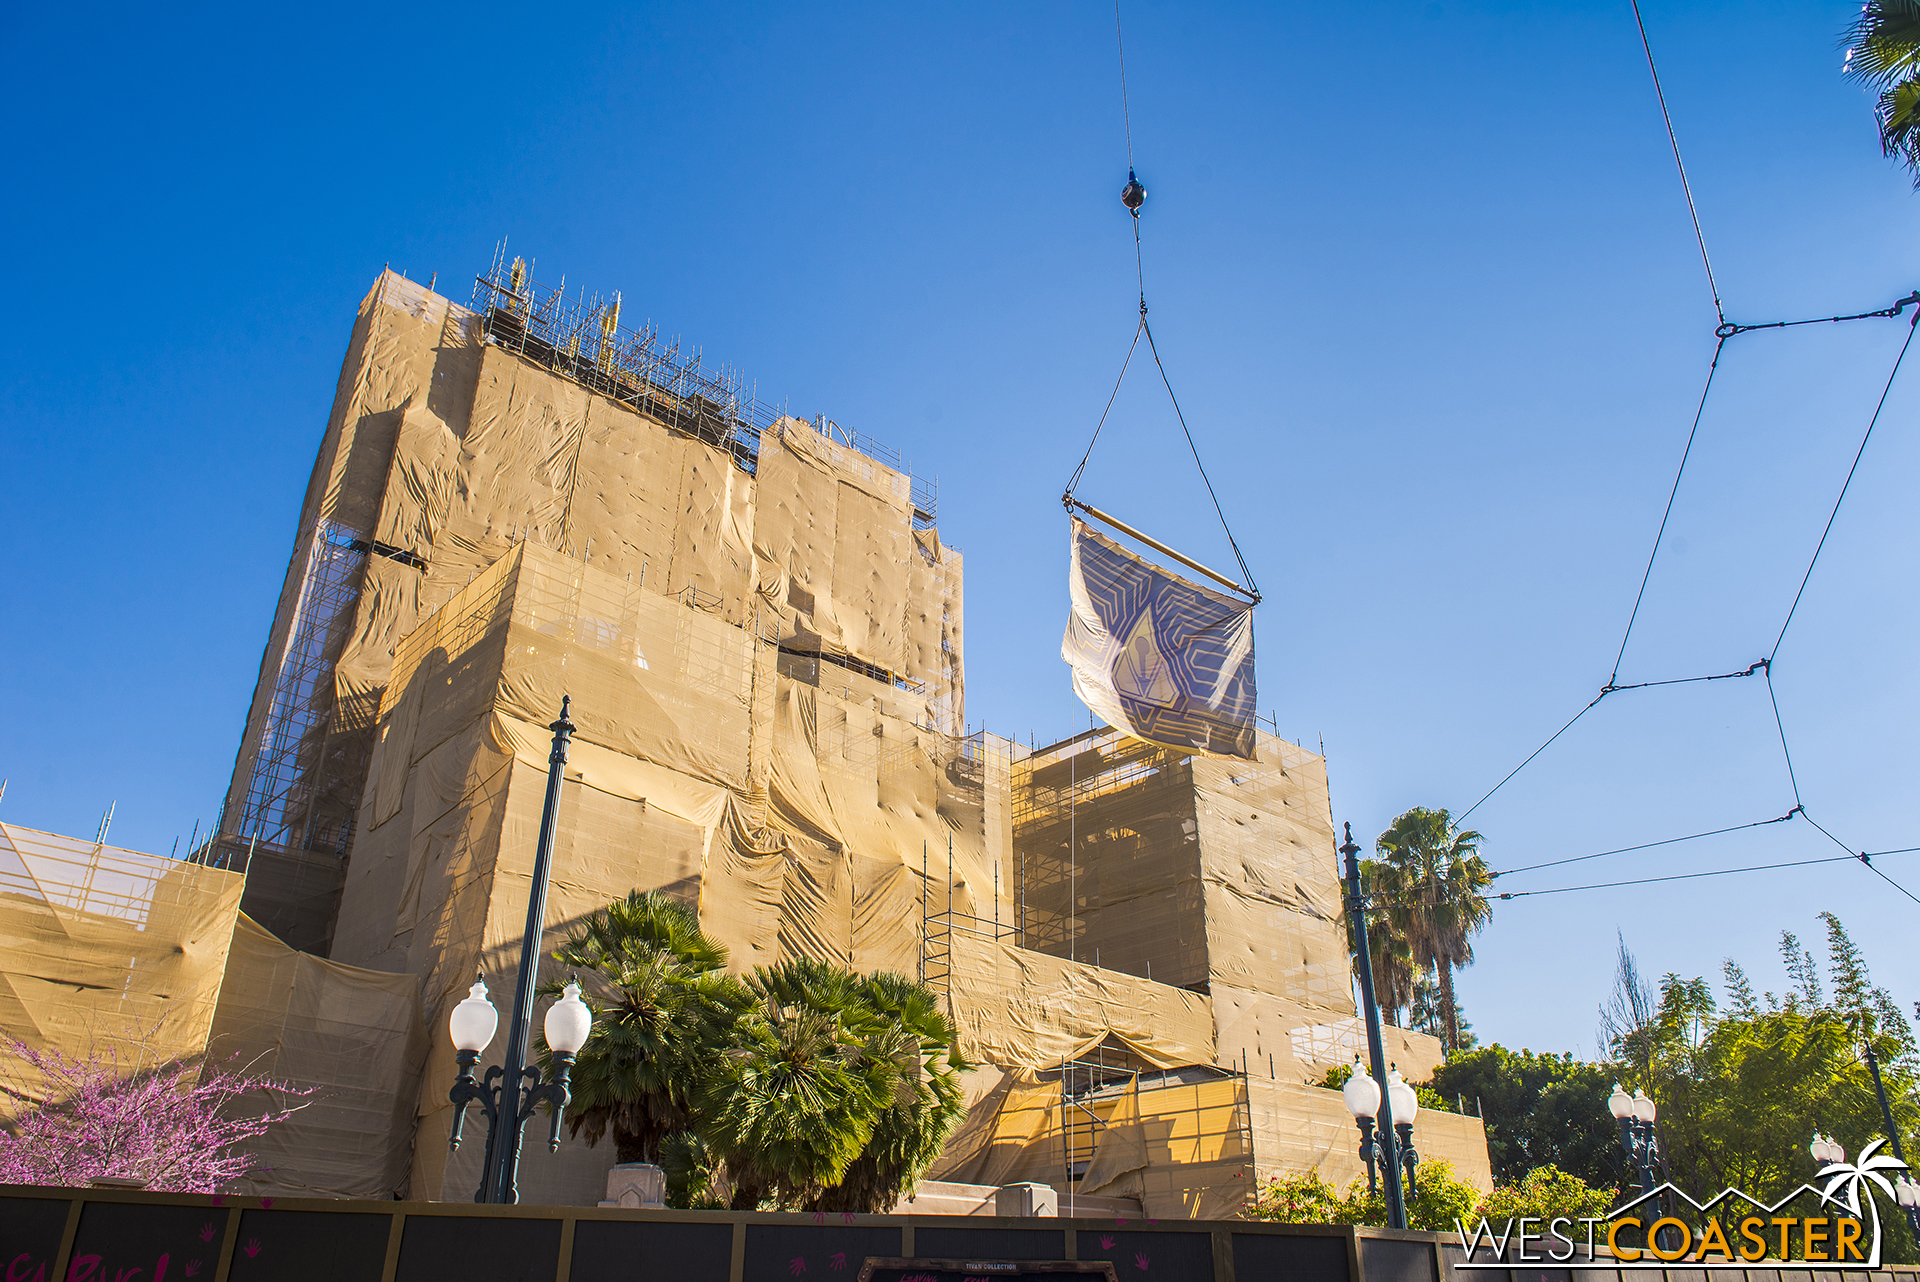 The adjacent crane has lifted a banner showing off the Guardians iconography.